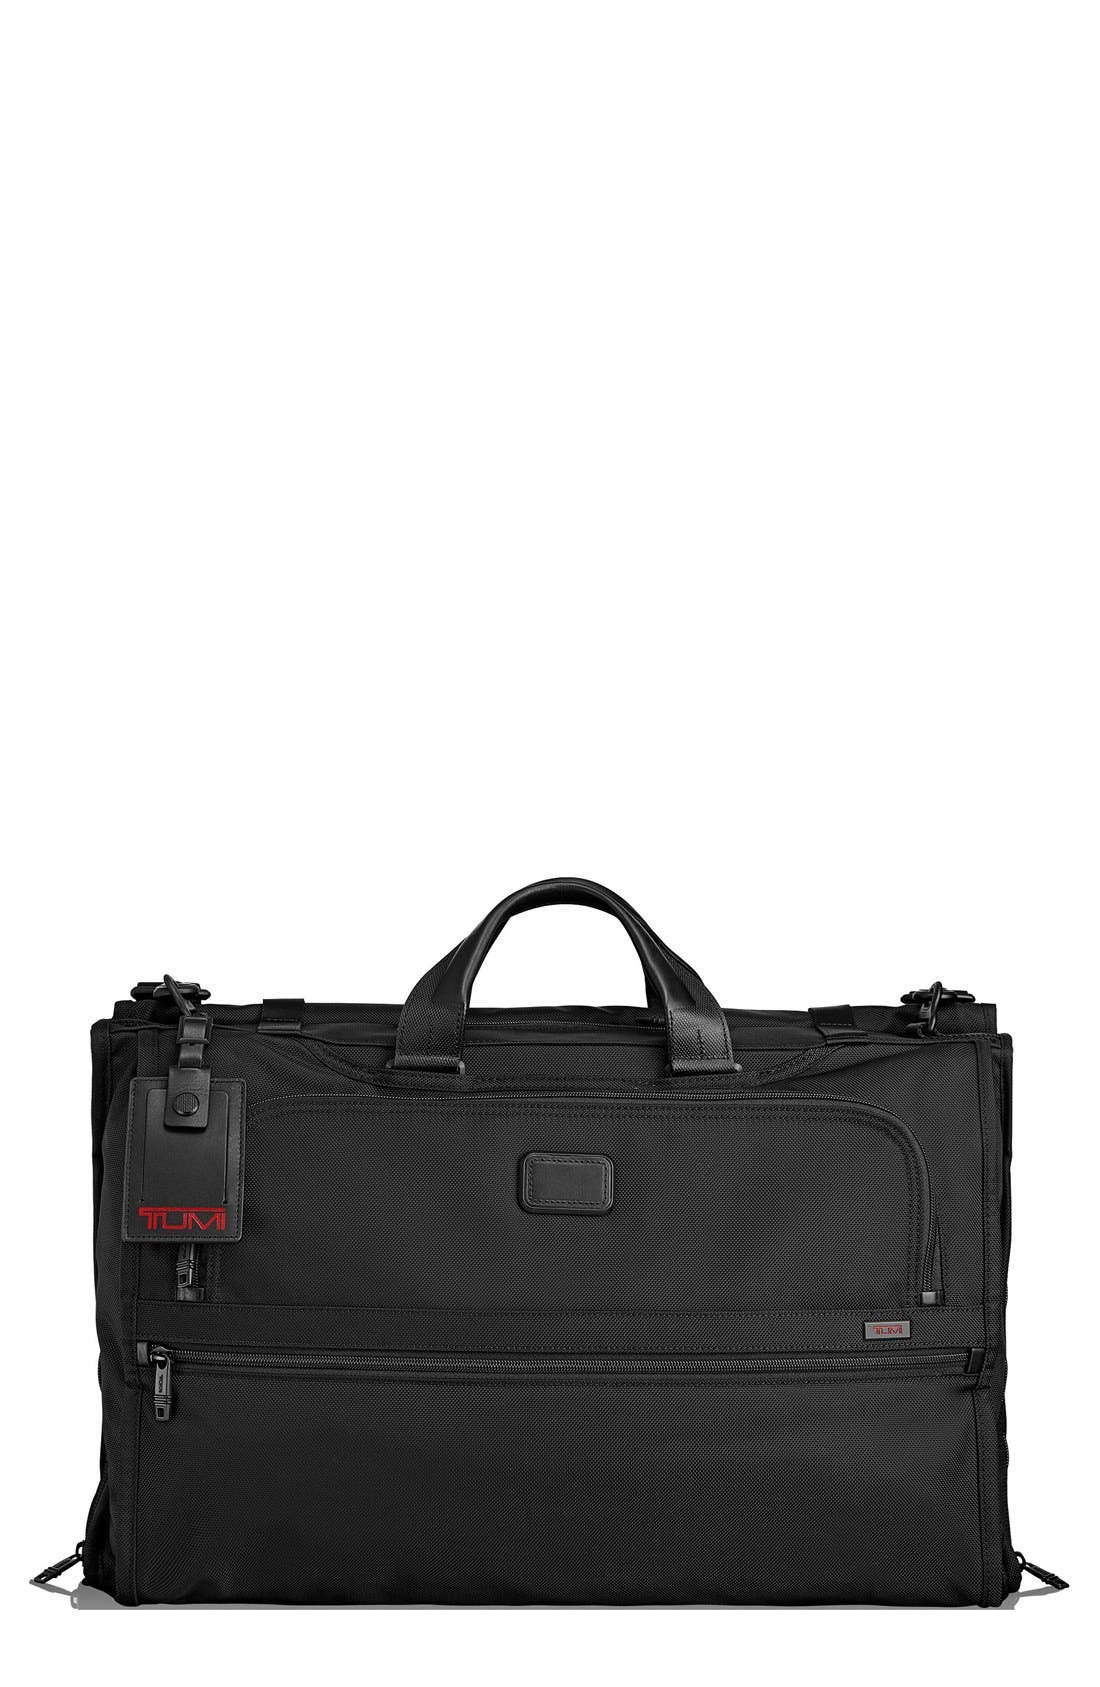 Tumi 'Alpha 2' Trifold Carry-On Garment Bag (22 inch)